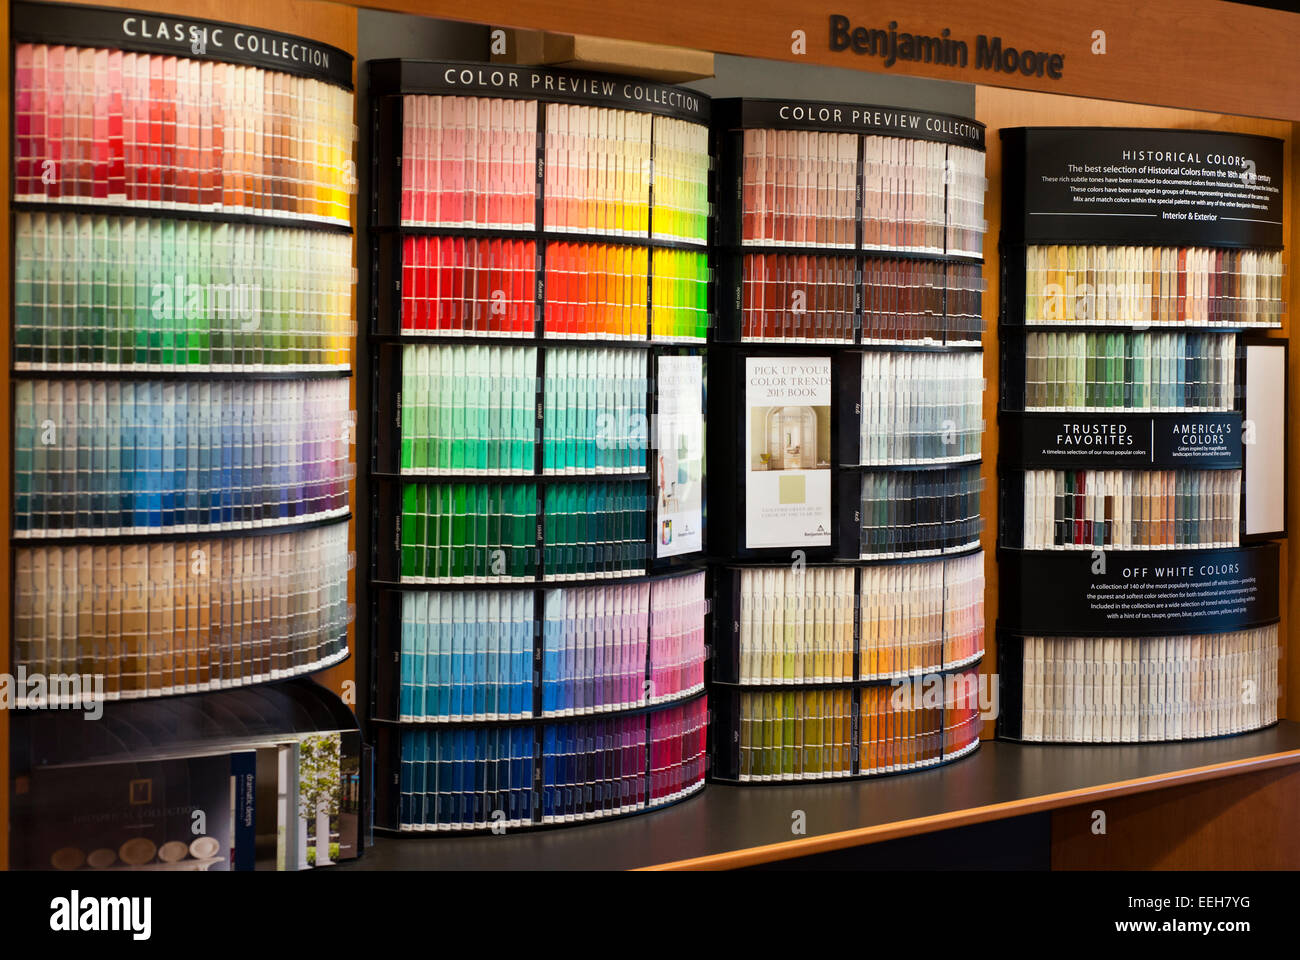 Benjamin moore paint store color display stock photo for Homedepot colorsmartbybehr com paintstore